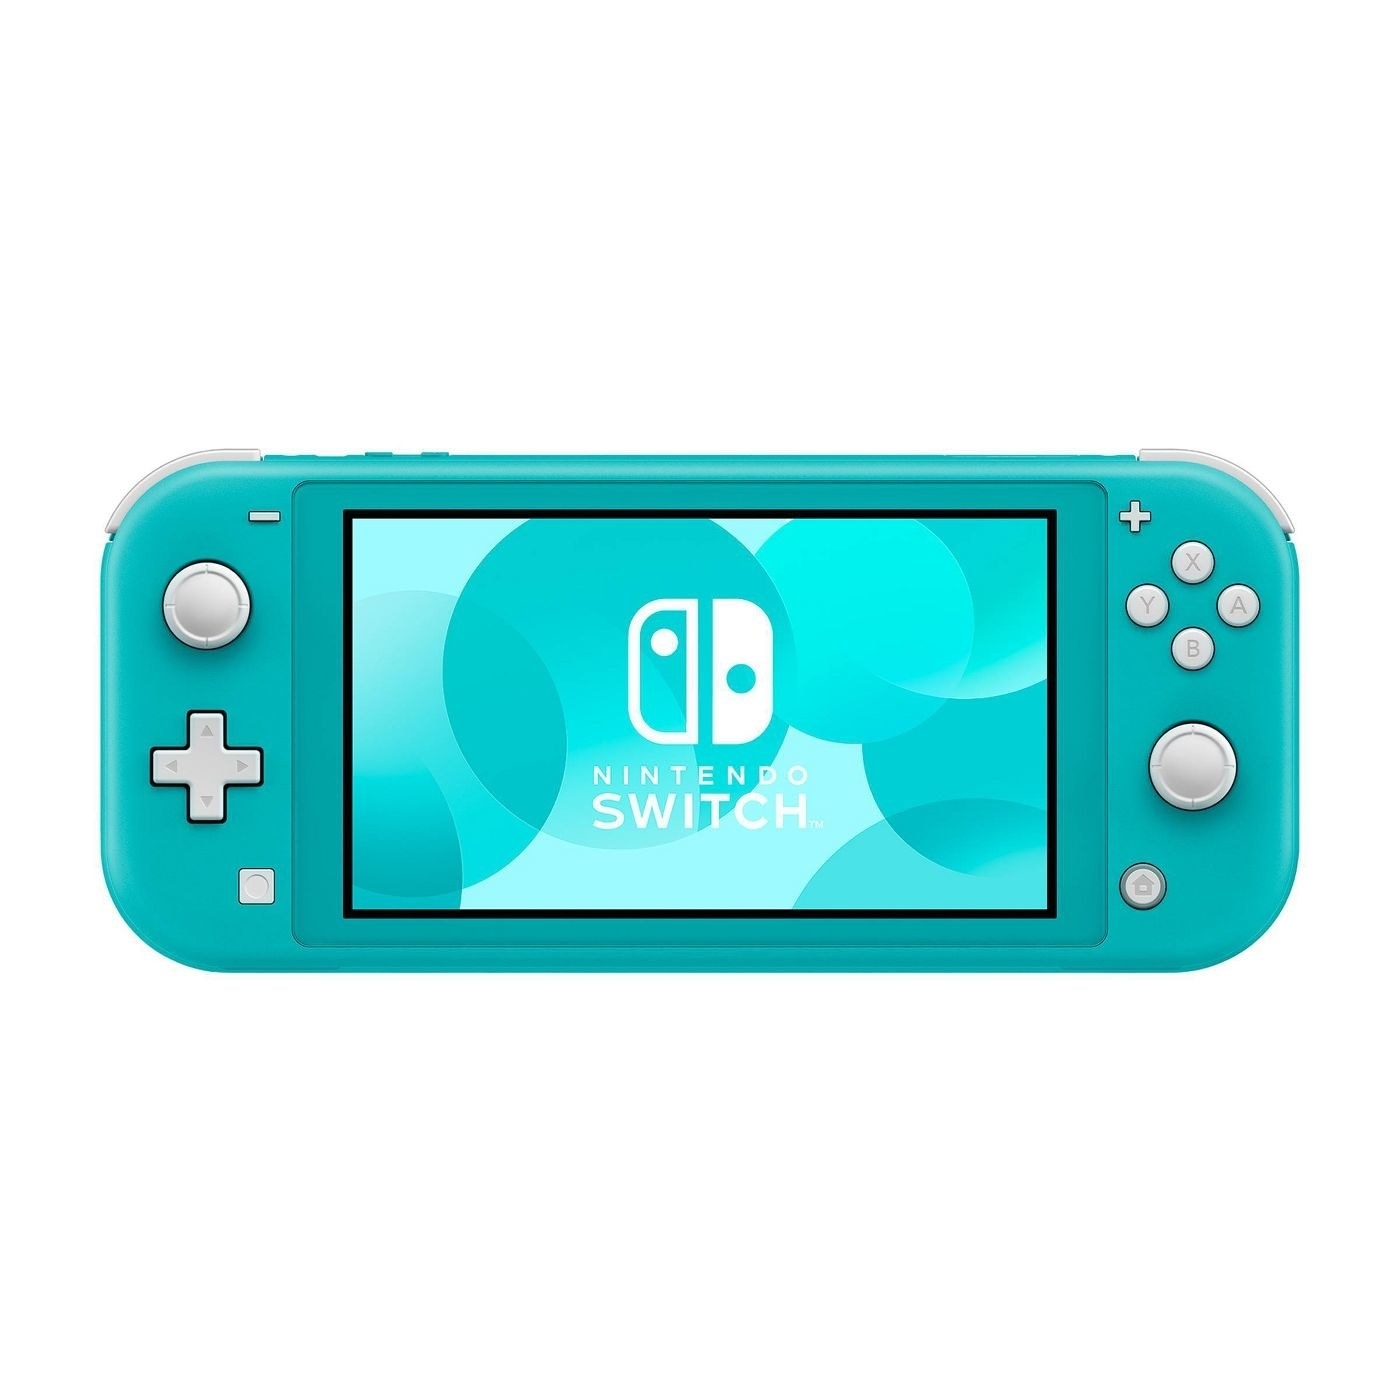 The Nintendo Switch Lite in turquoise